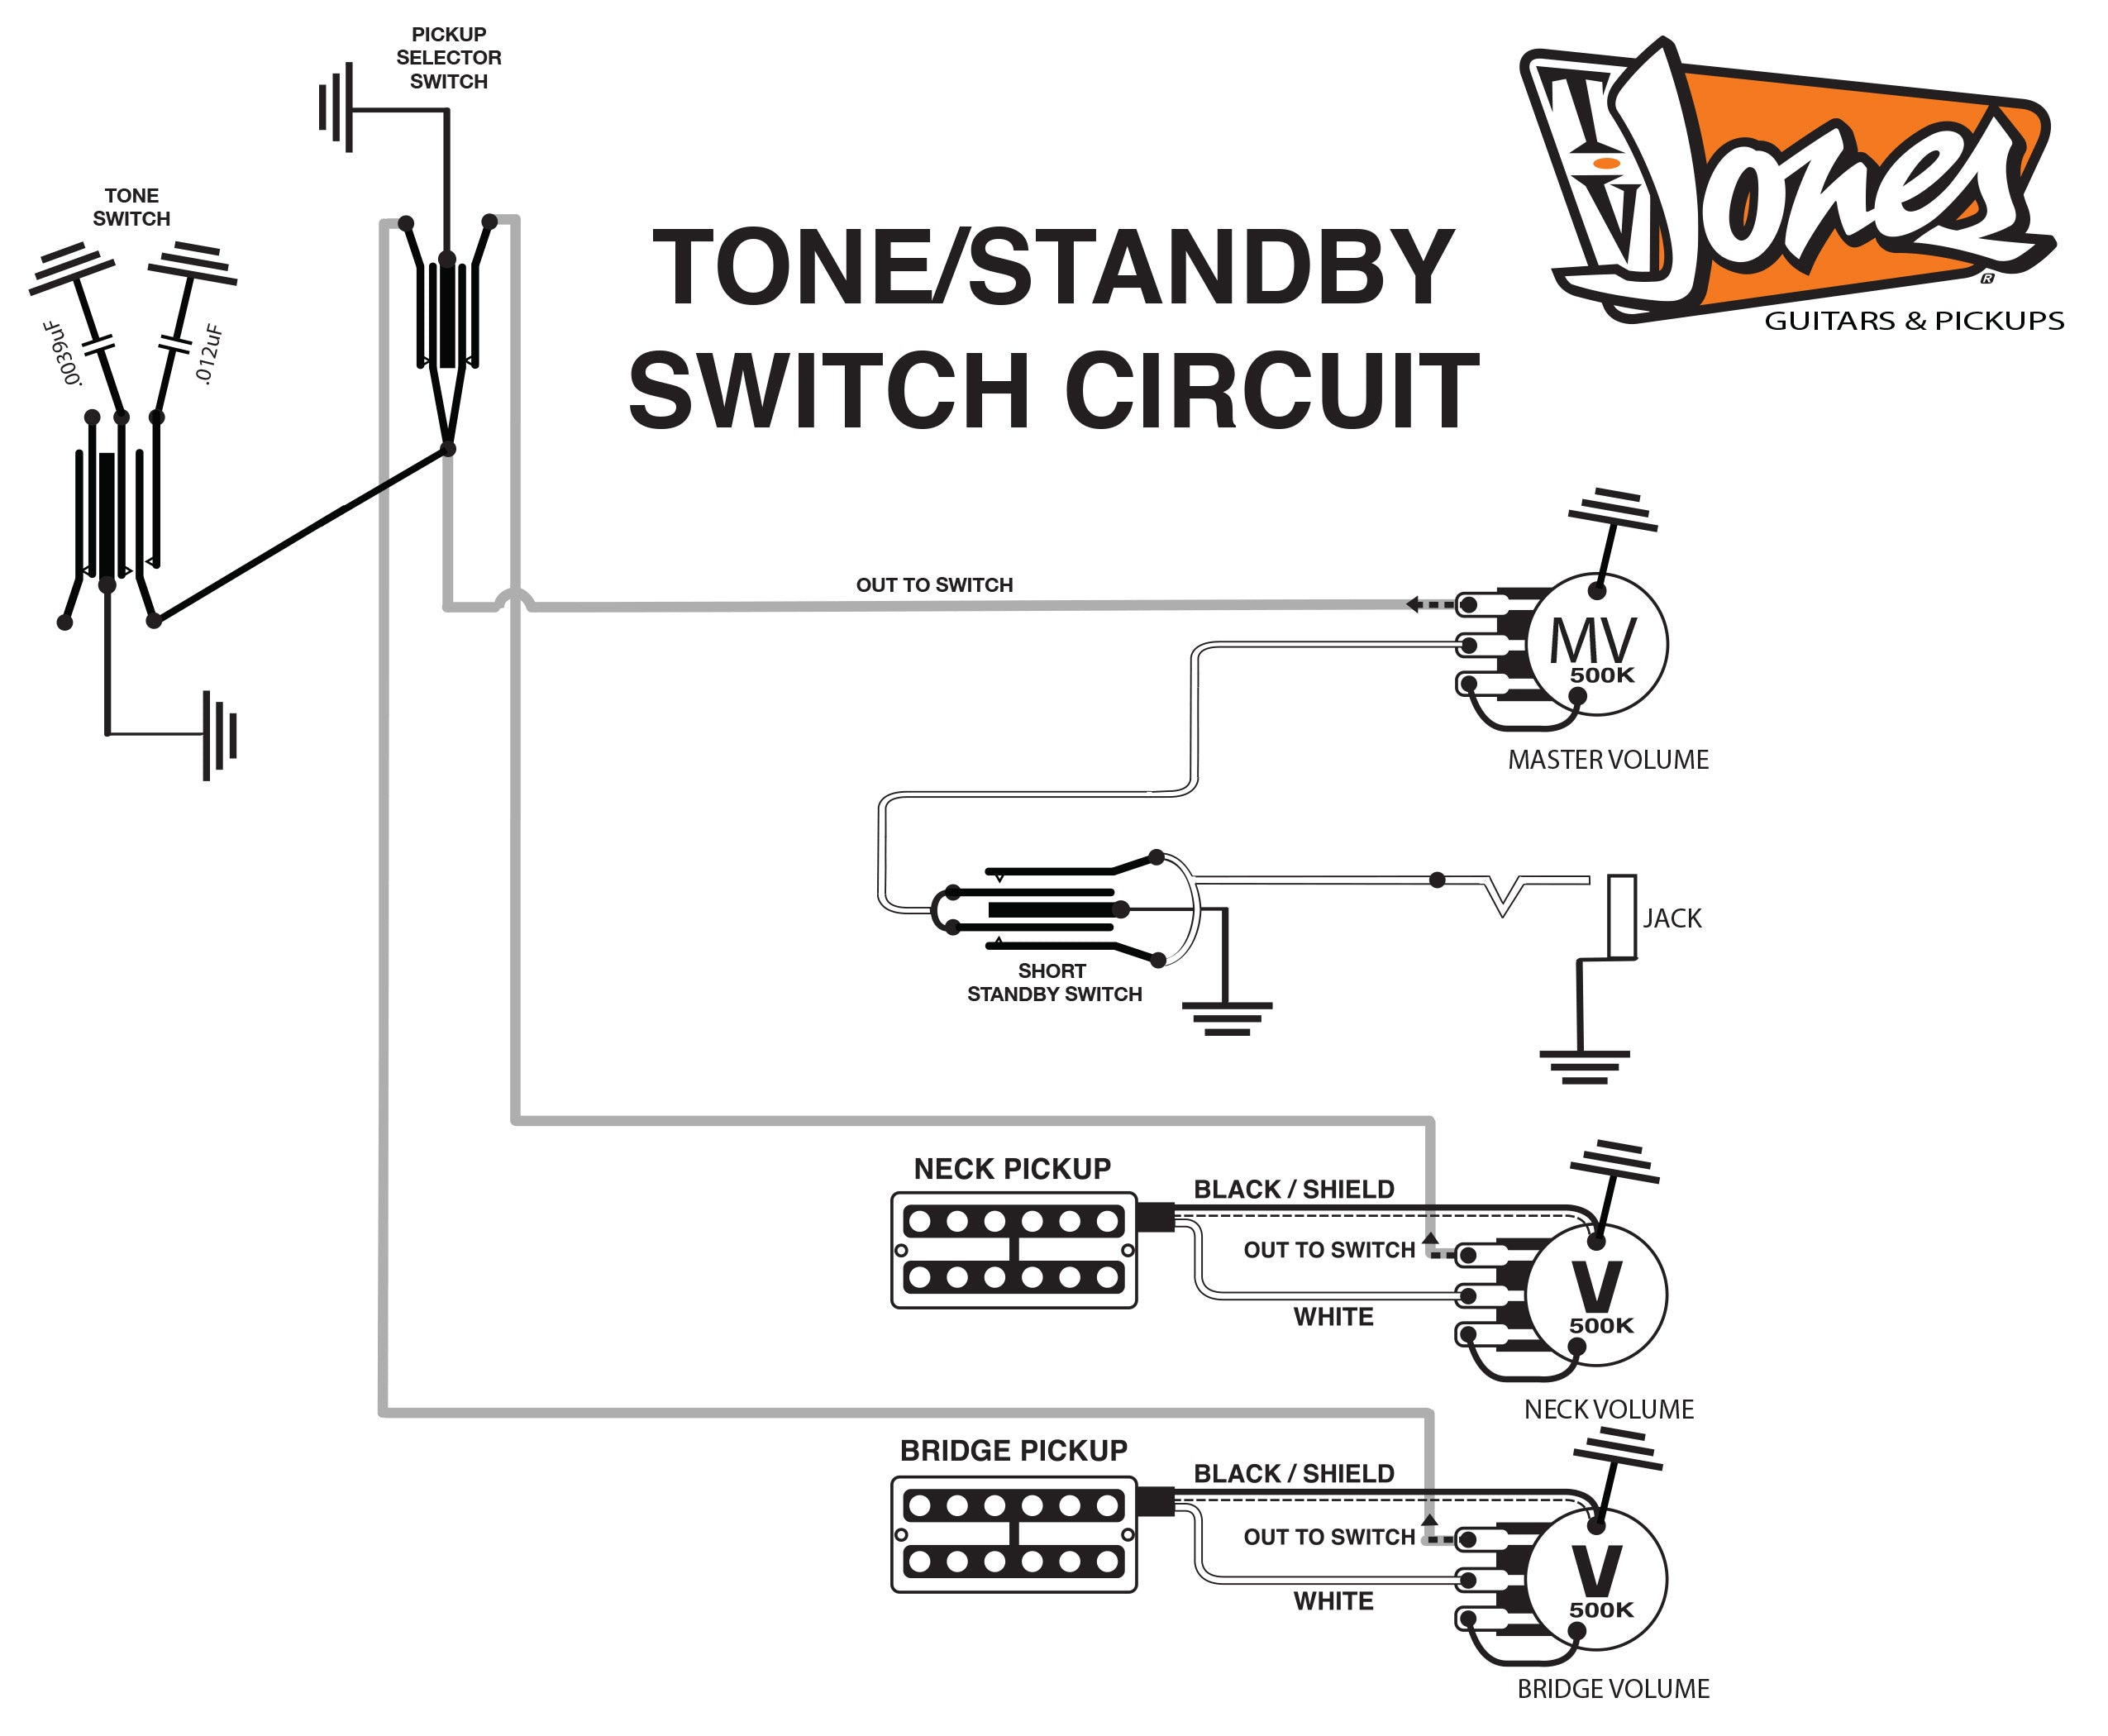 tv jones product dimensions jimi hendrix strat wiring-diagram gretsch  guitar schematics